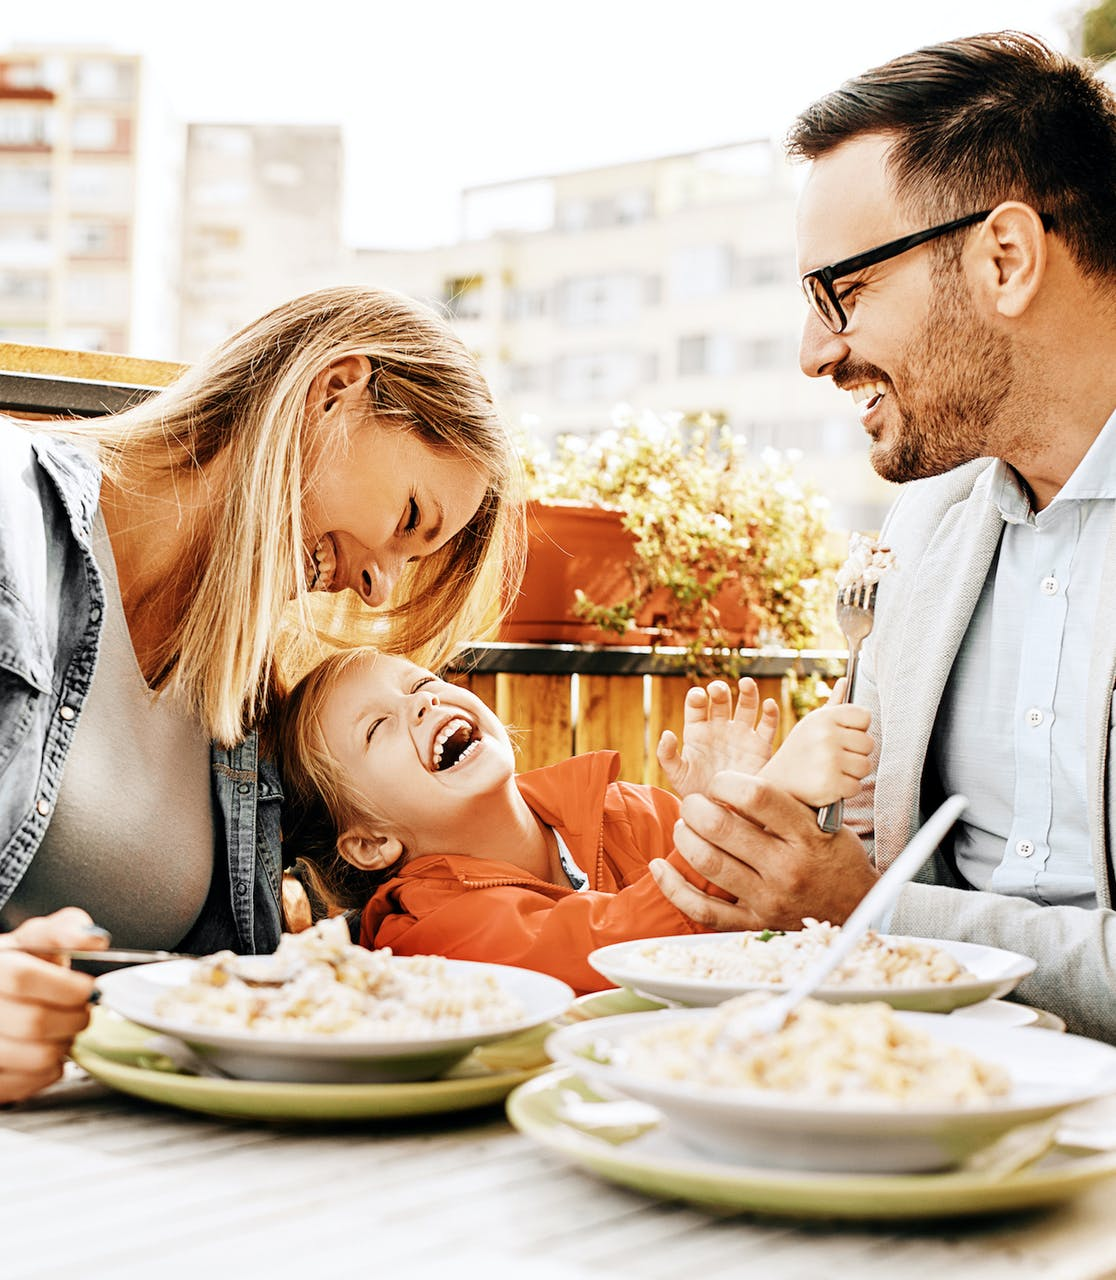 Family laughing and enjoying a meal